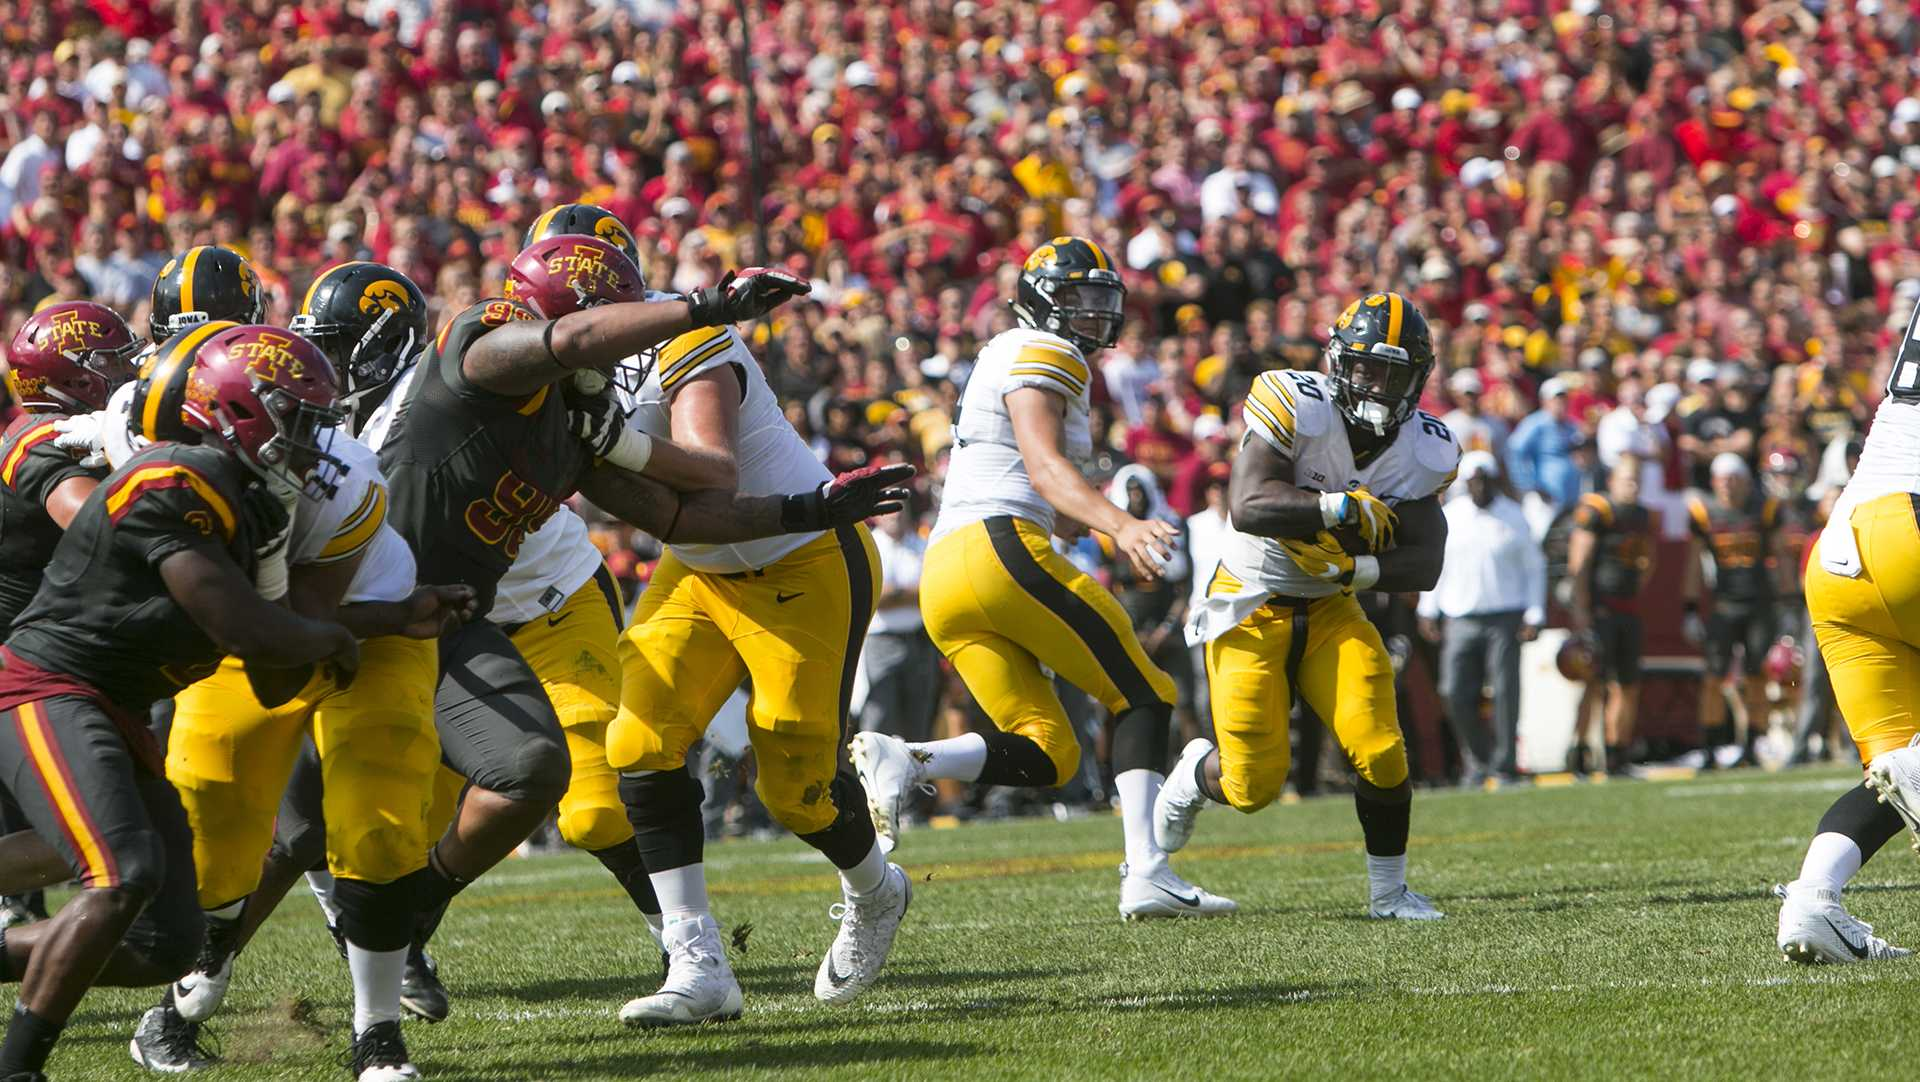 Iowa running back James Butler takes a handoff during the Iowa/Iowa State game for the Cy-Hawk trophy in Jack Trice Stadium on Saturday, Sept. 9, 2017. The Hawkeyes defeated the Cyclones, 44-41, in overtime.(Joseph Cress/The Daily Iowan)